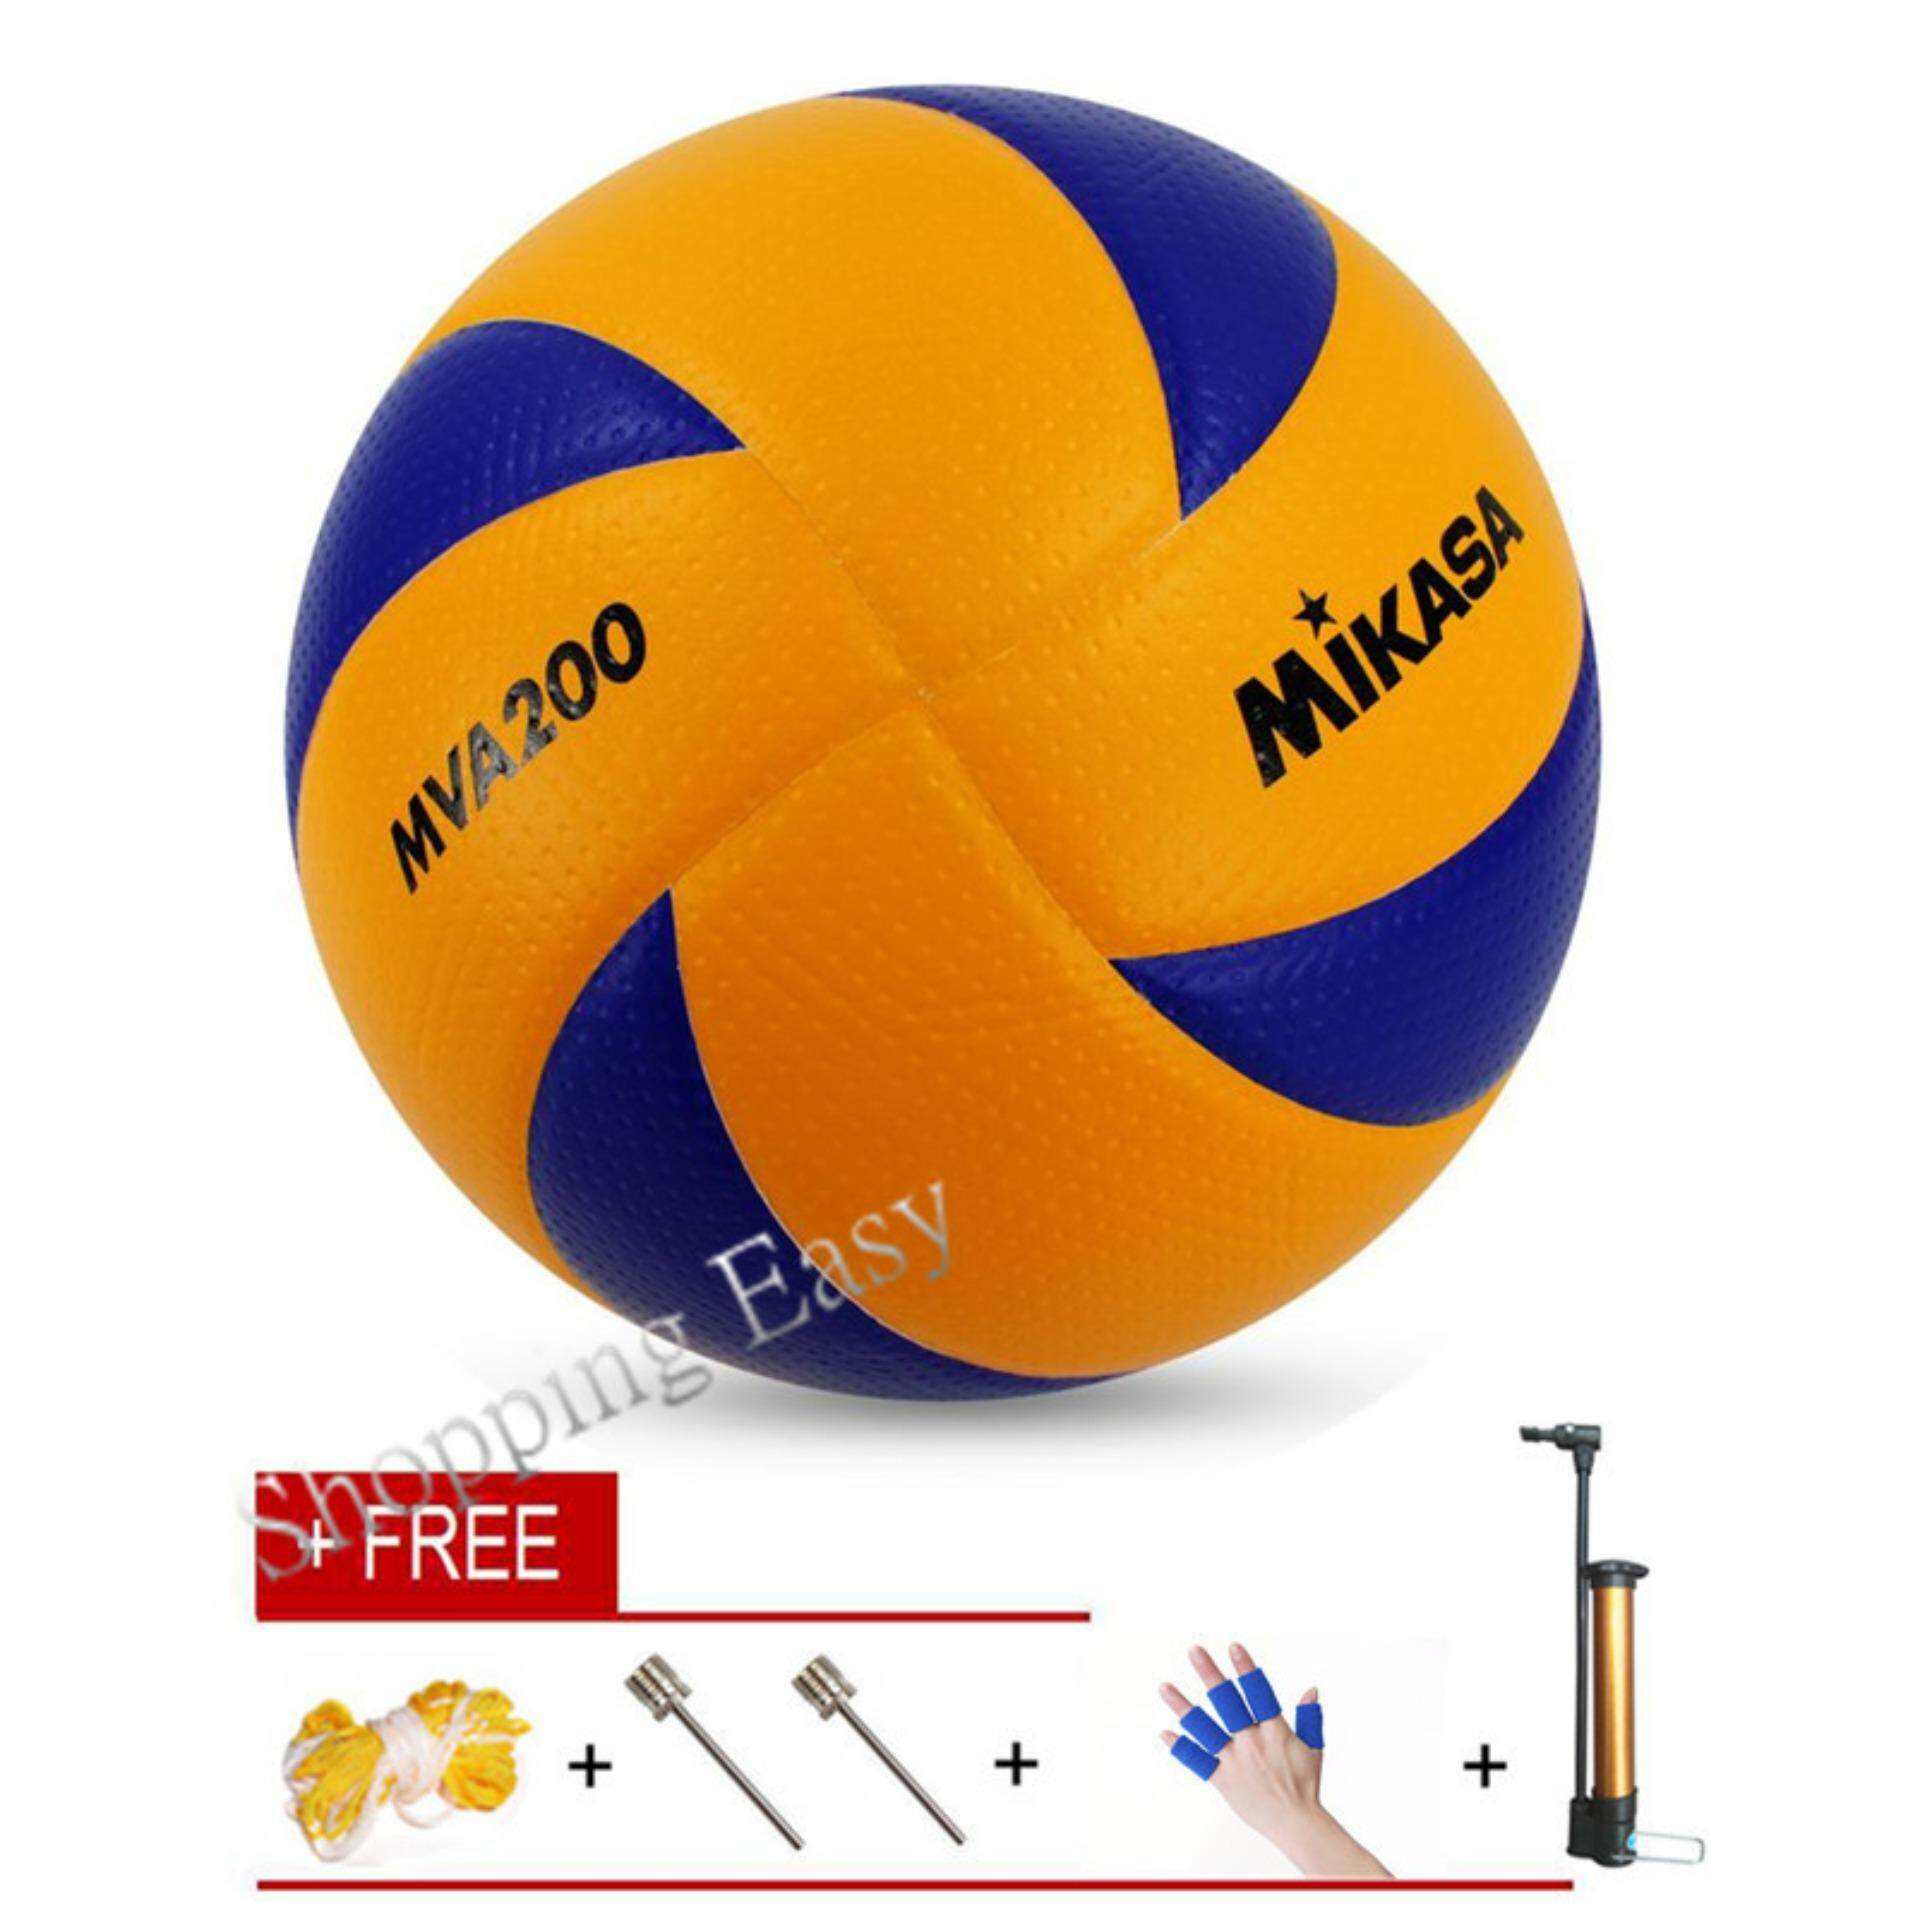 Mikasa Soft Touch Volleyball Size 5 Mva200 Train Quality Pu Volleyball - Intl By Koki Bear.